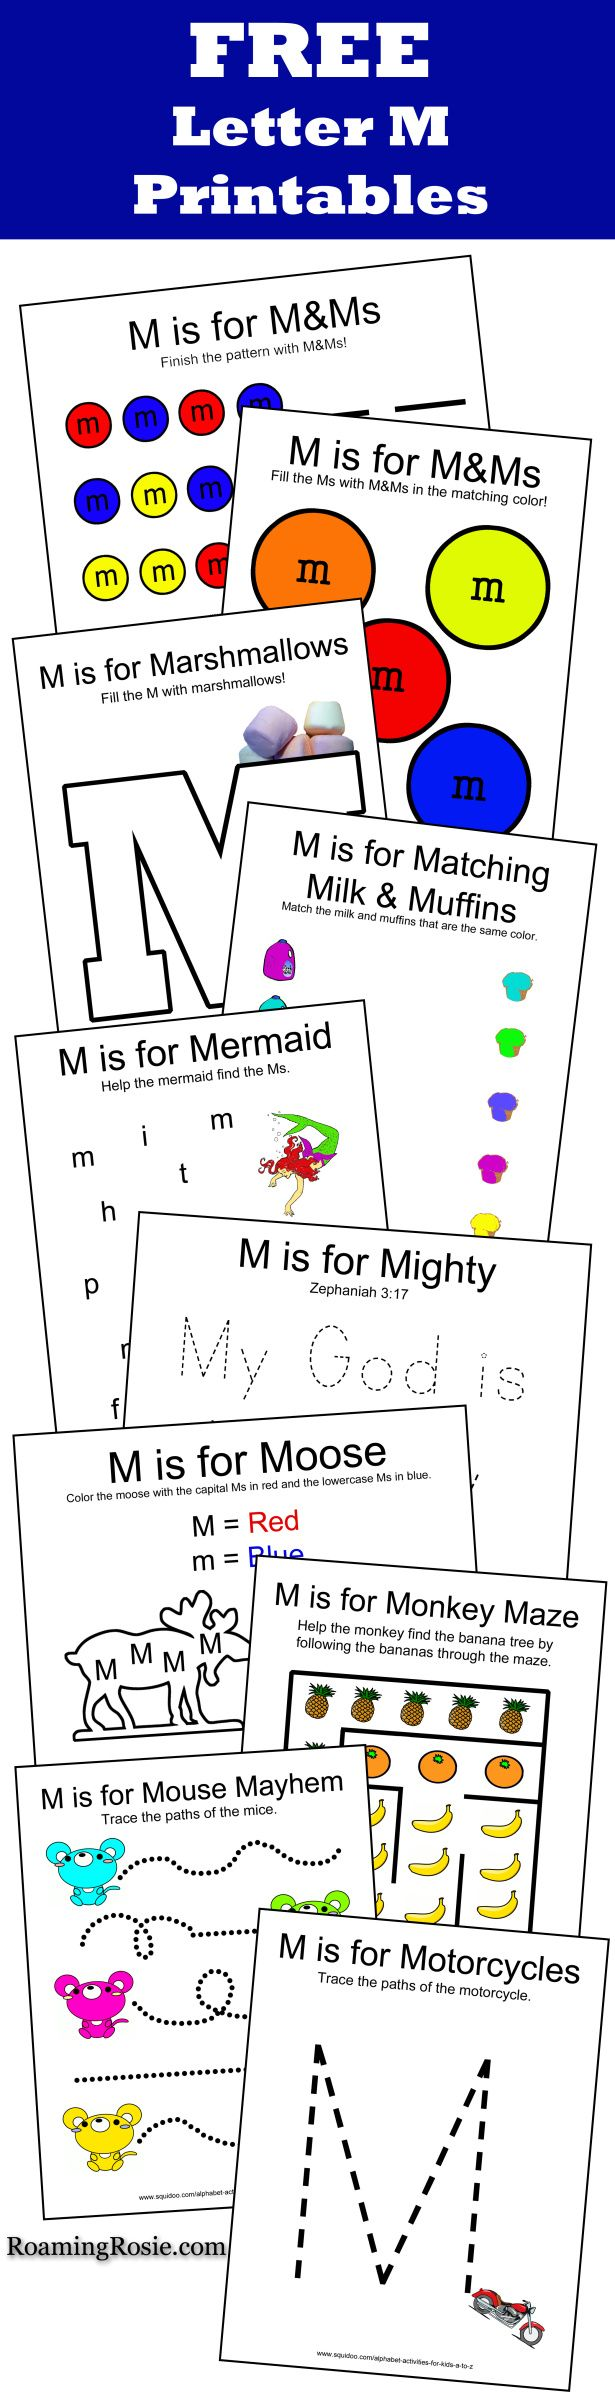 FREE Letter M Printables | Alphabet Activities for Kids                                                                                                                                                                                 More